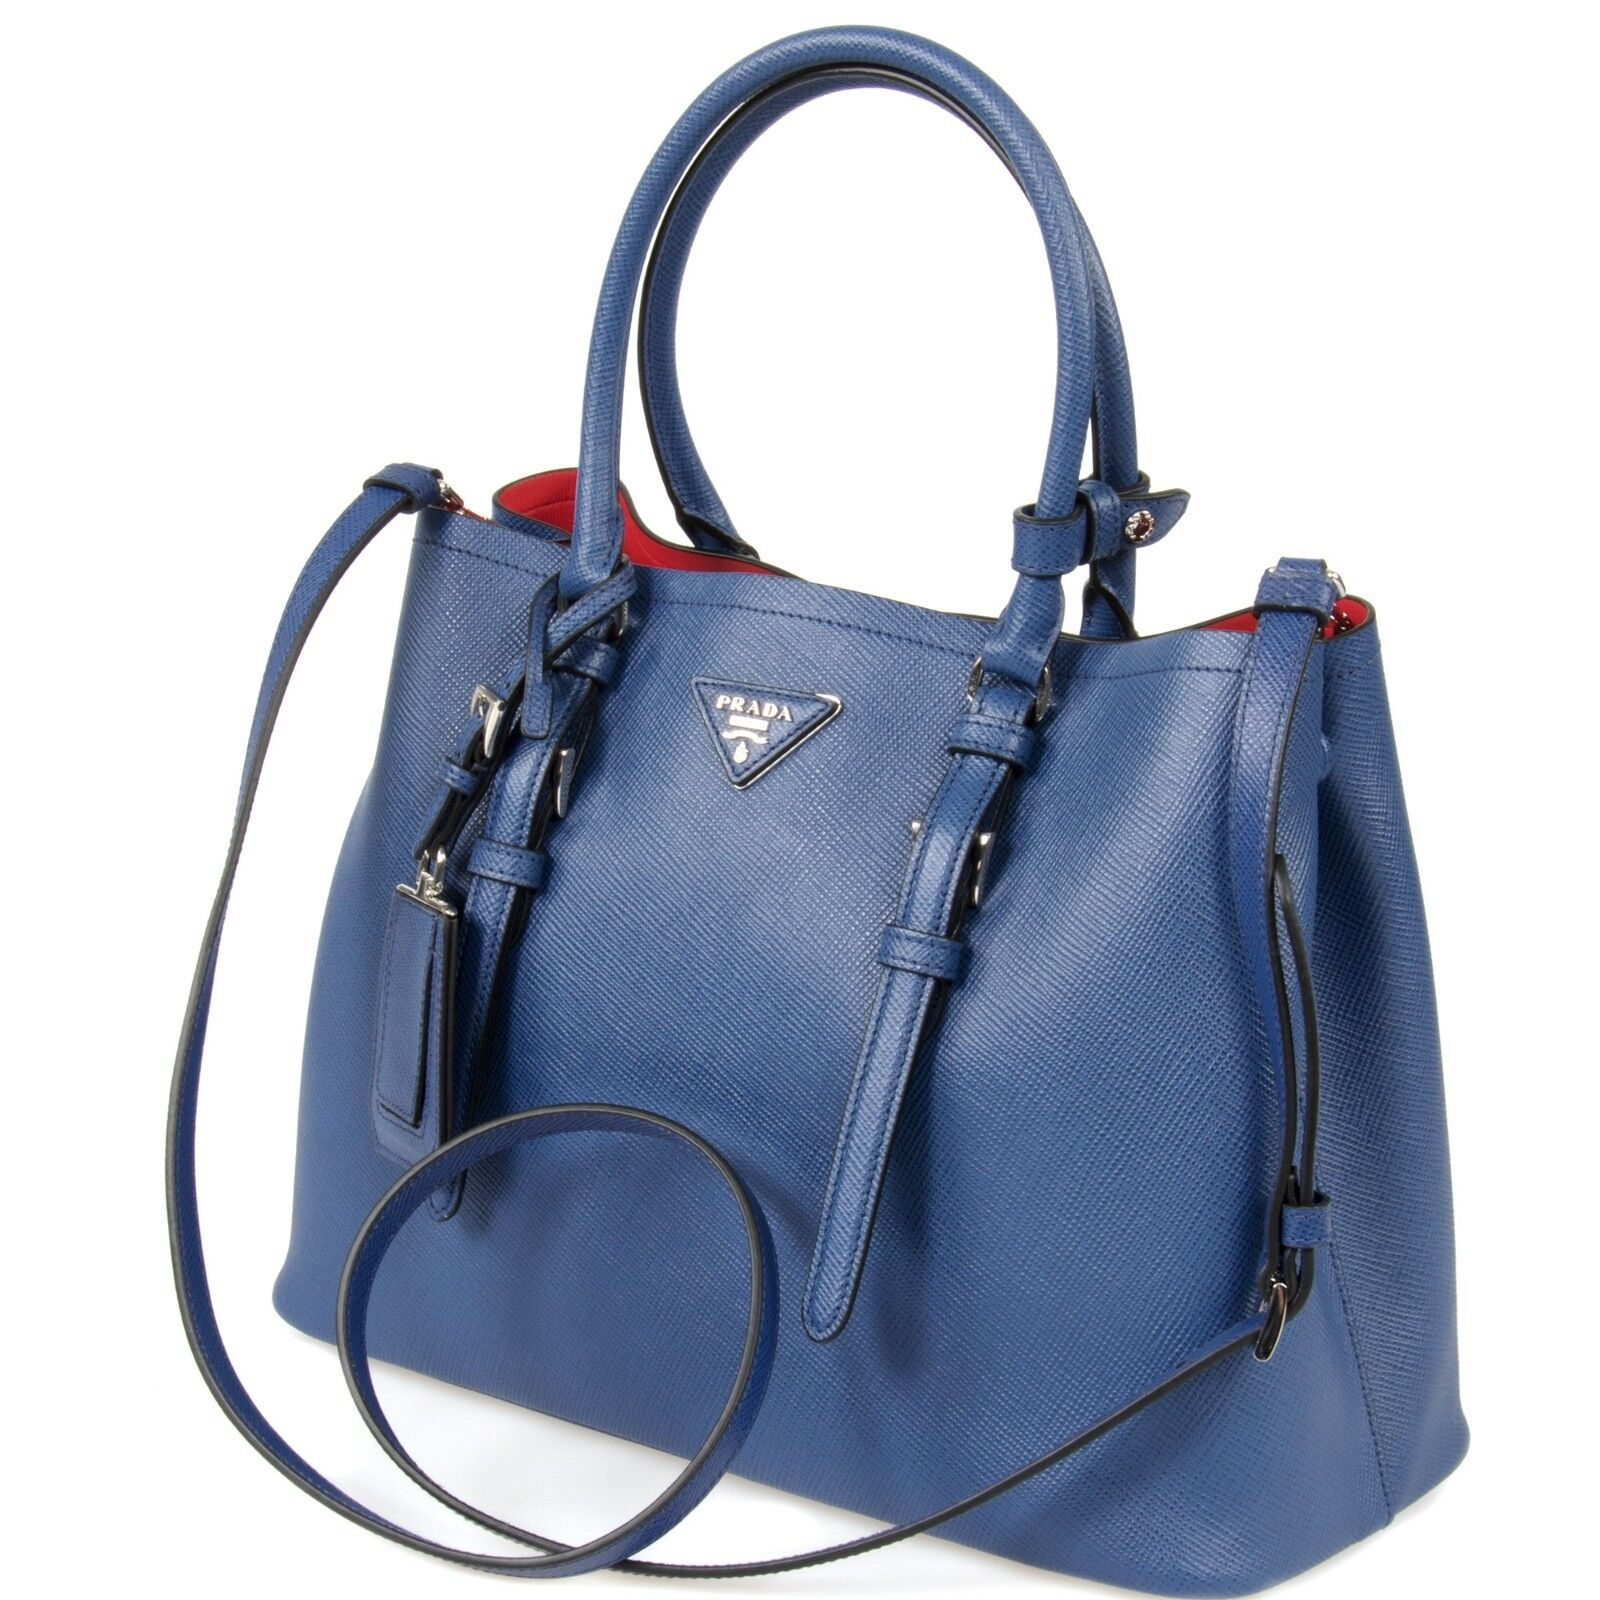 e77ec3004dff PRADA Double Leather Bag Model 1bg838 F0021 Inchiostro/ink Blue for ...